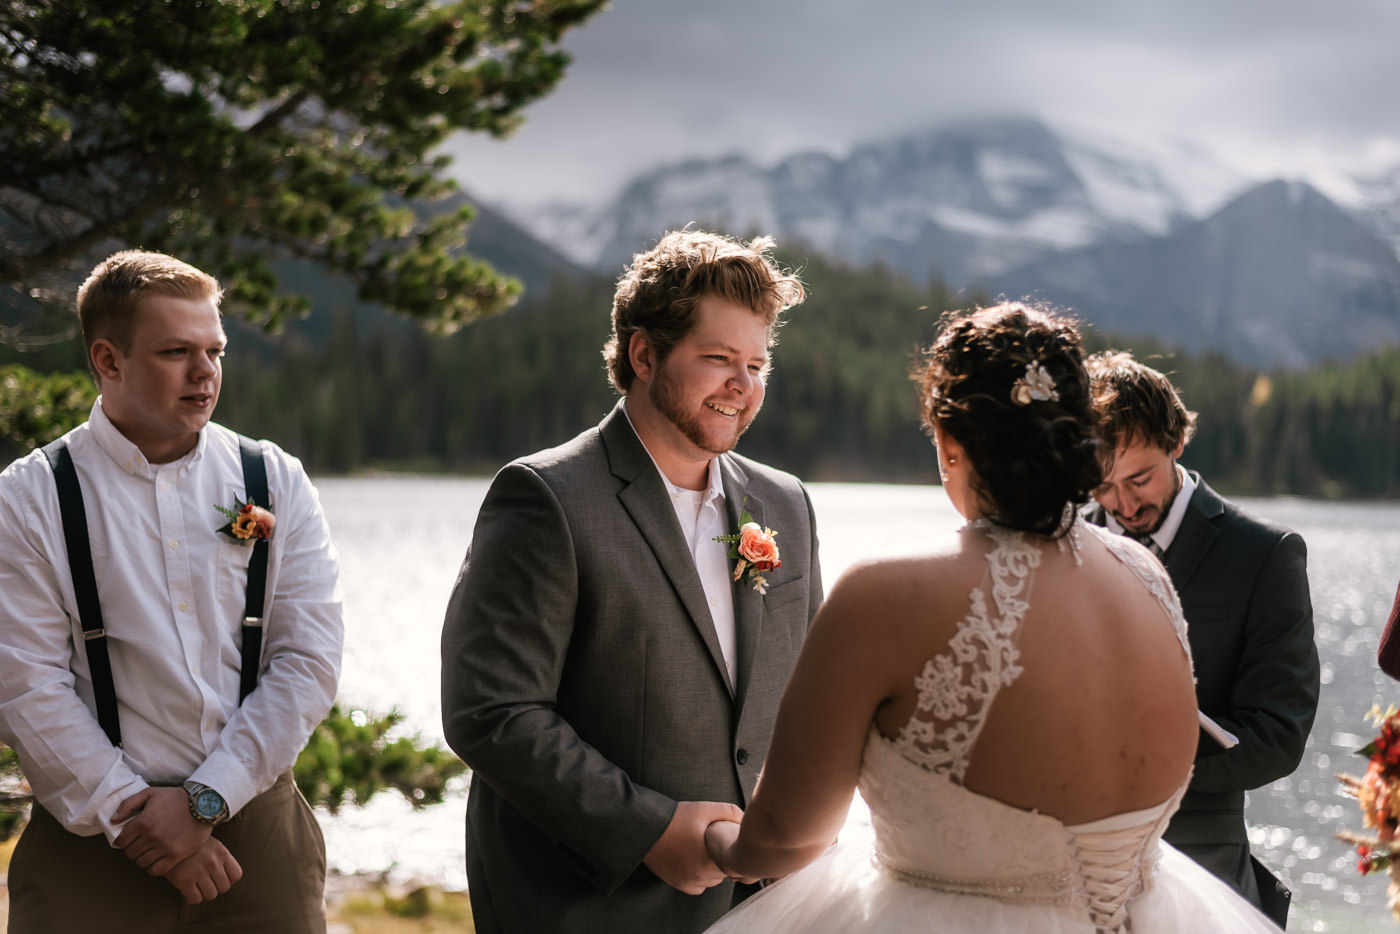 Groom is glowing with happiness as he marries his best friend on the shores of Swiftcurrent Lake.